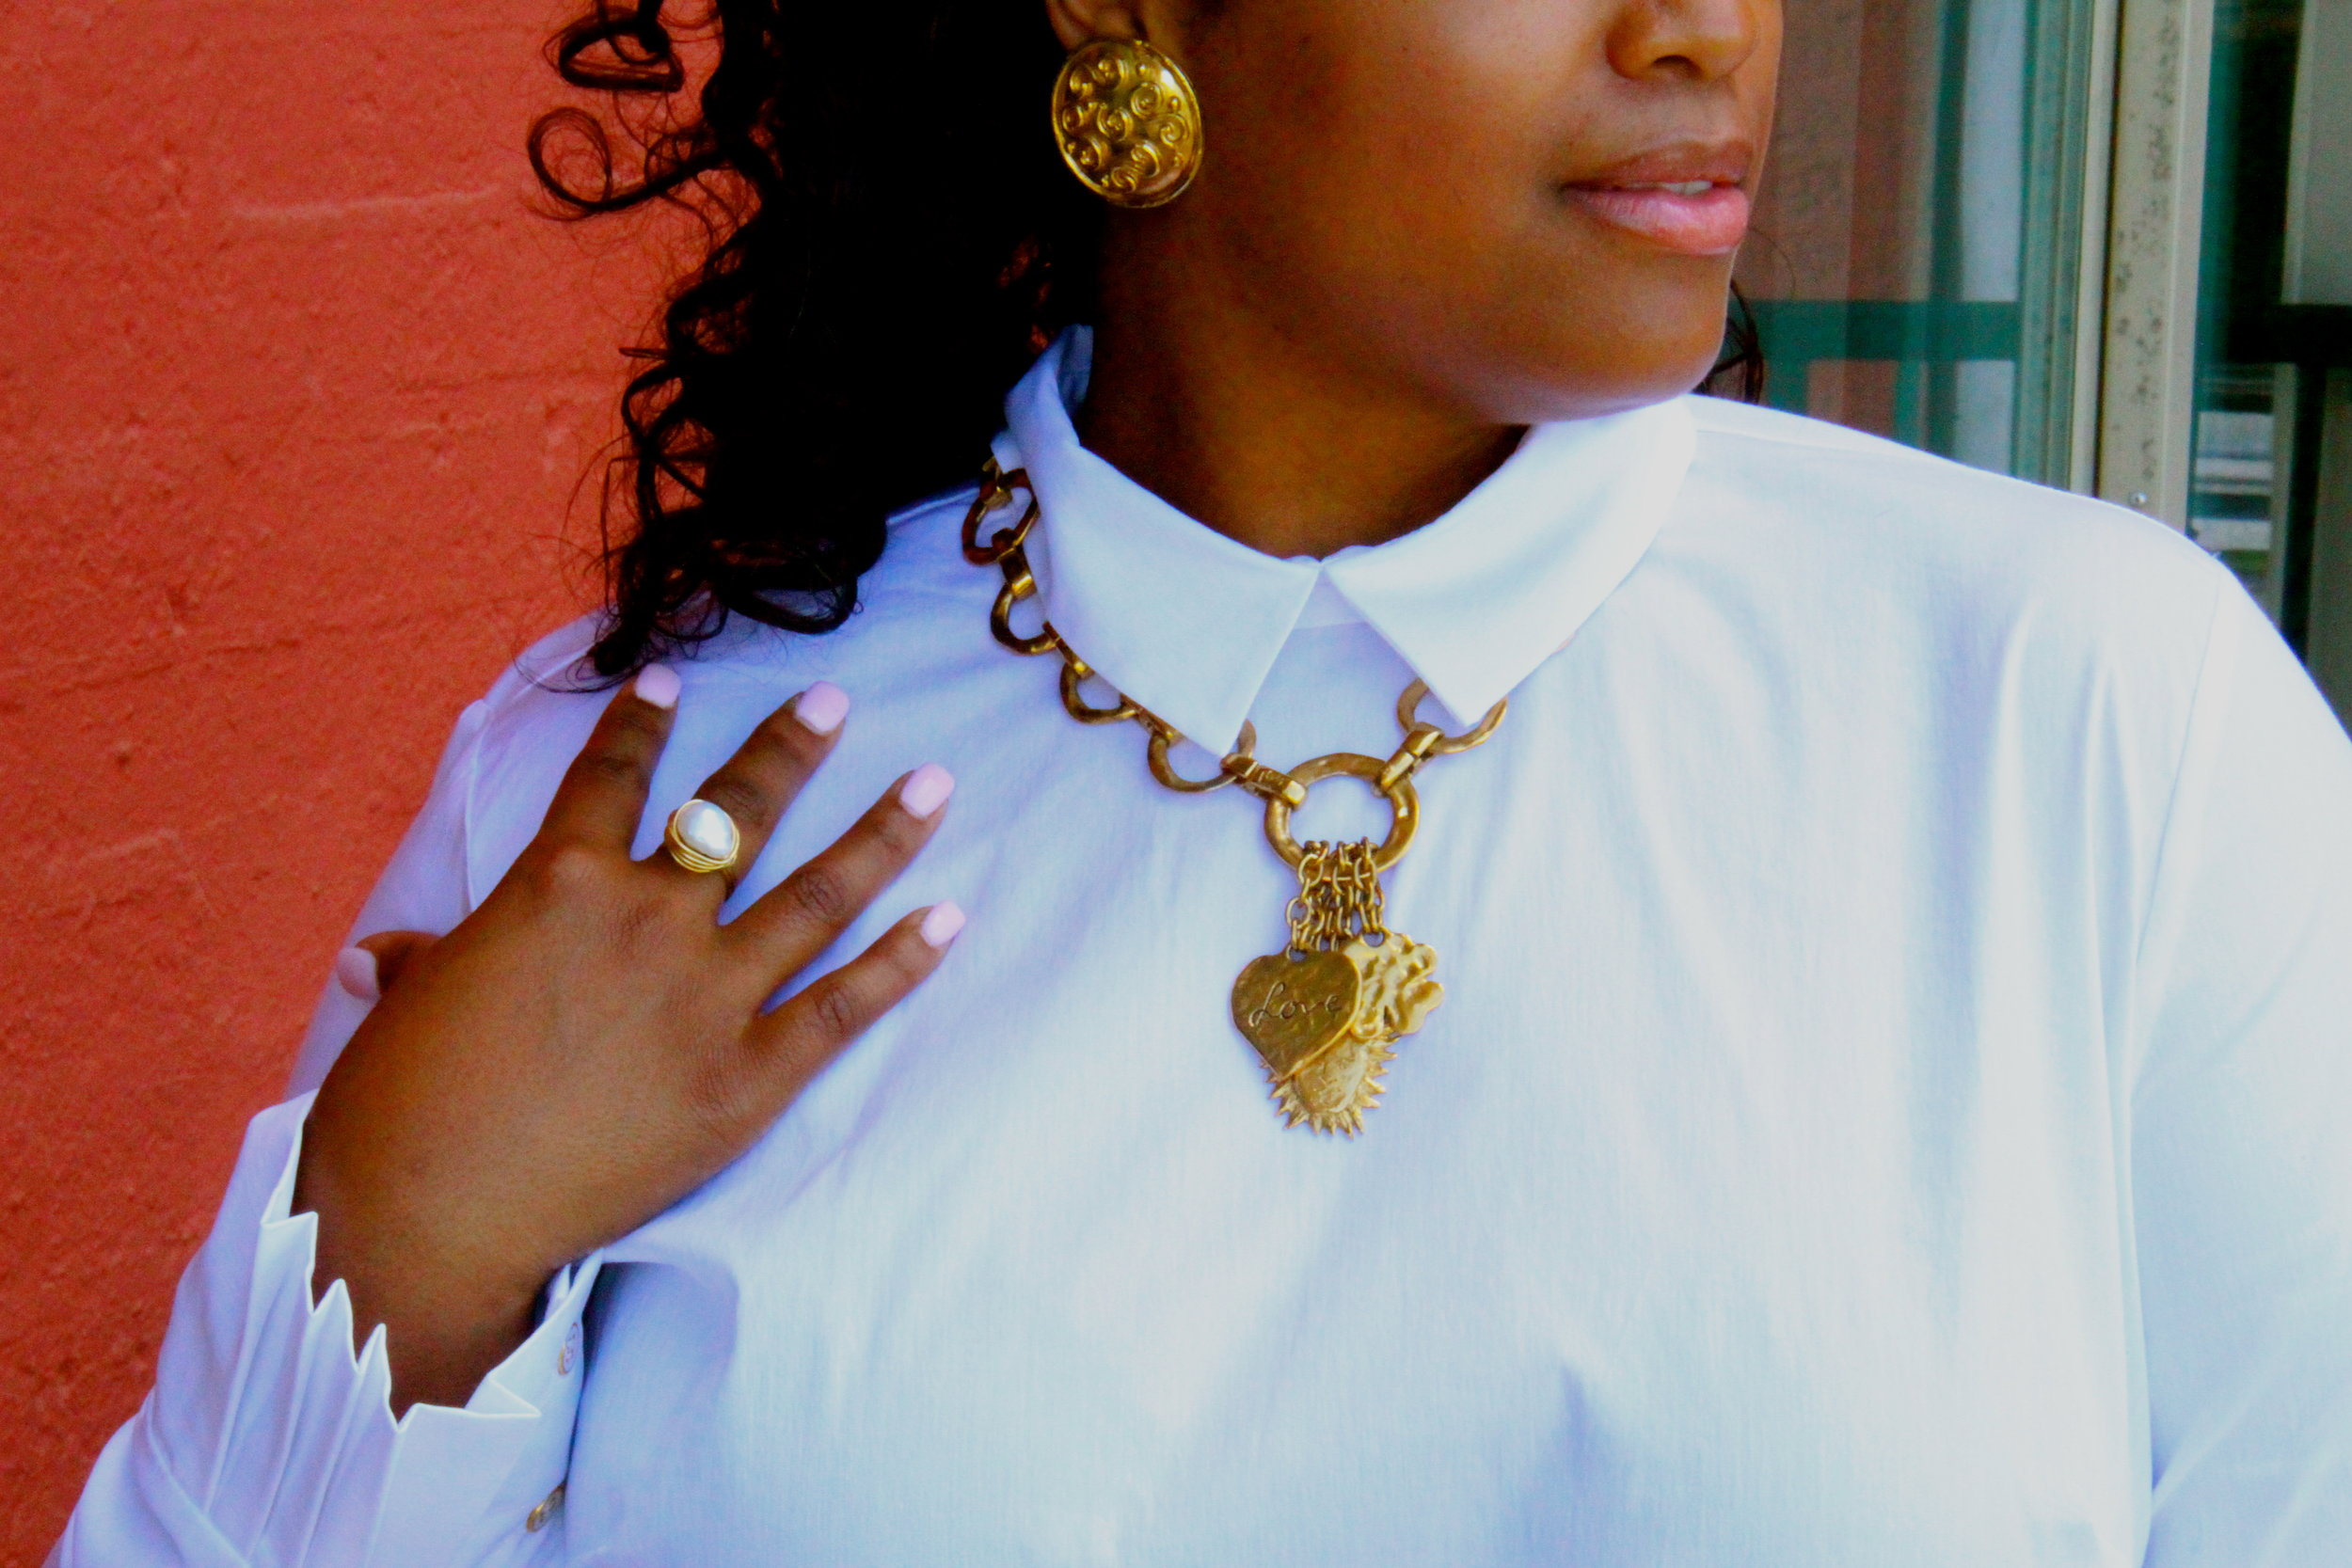 Need a classic brunch look? Pair a    crisp white shirt  with a  vintage gold necklace  and  earrings  and a hand-made oversized  freshwater pearl ring . White also goes great with an  abalone and fresh water pearl stunner paired with lovely  dominica green earrings  pictured below.